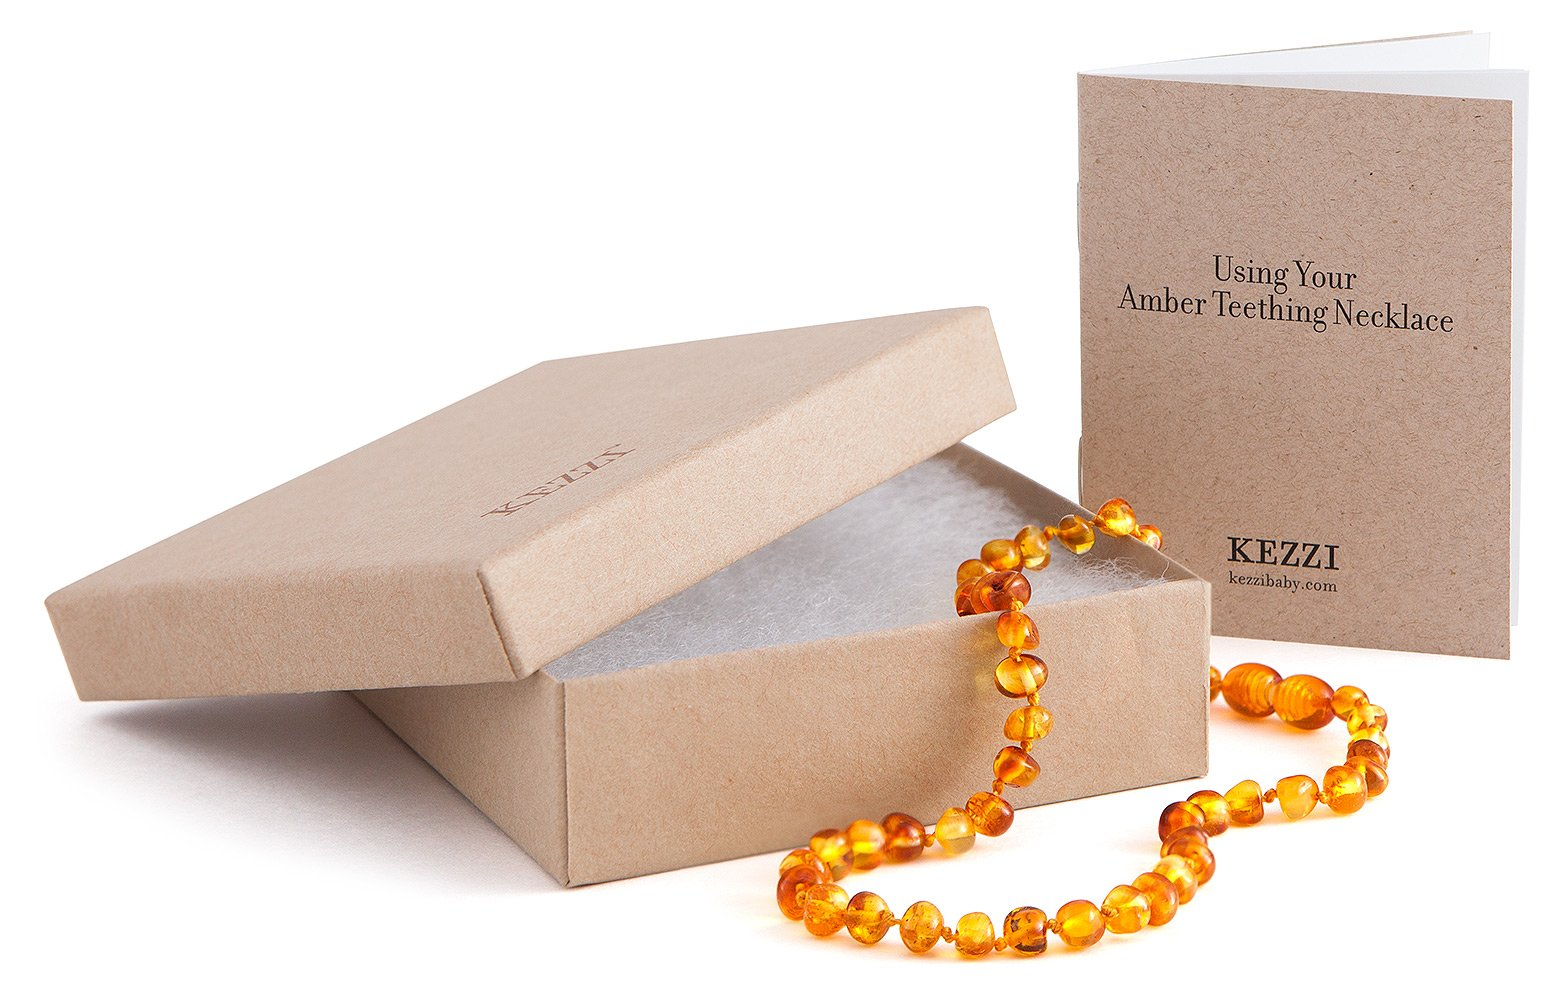 Amber Teething Necklace - Certified Authentic Baltic Amber - Amber Beads Work By Releasing Naturally Occurring Succinic Acid As an Anti-inflammatory - Also Helps Reduce Drooling - Satisfied Customer Guarantee (Honey) by Kezzi - Amber Teething Necklace